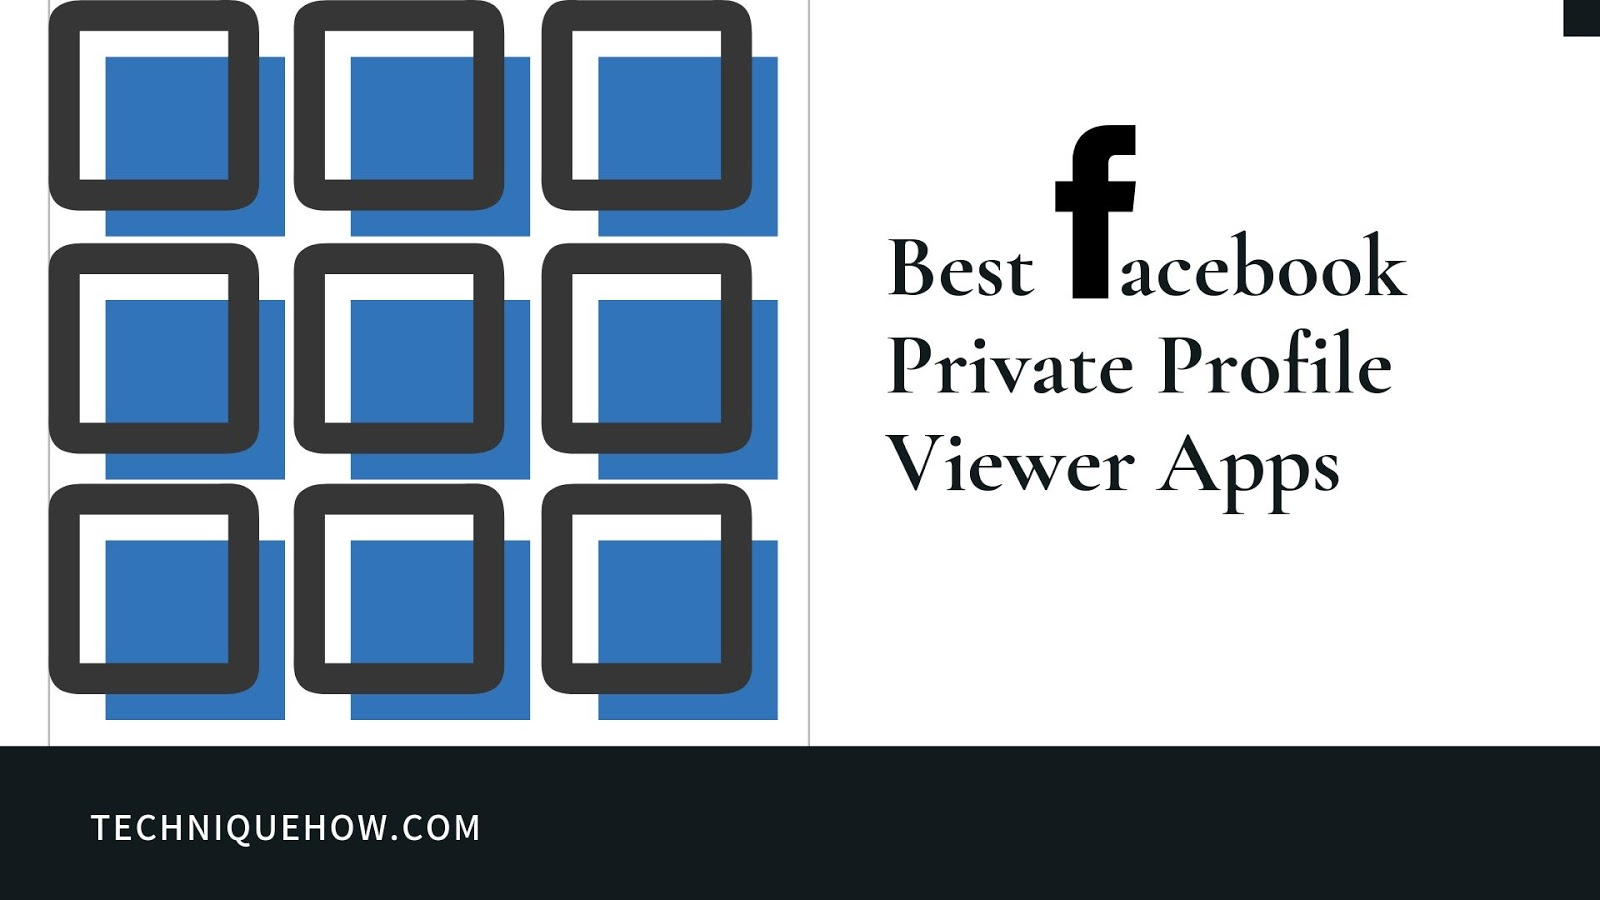 11 Best Facebook Private Profile Viewer Apps [Detailed